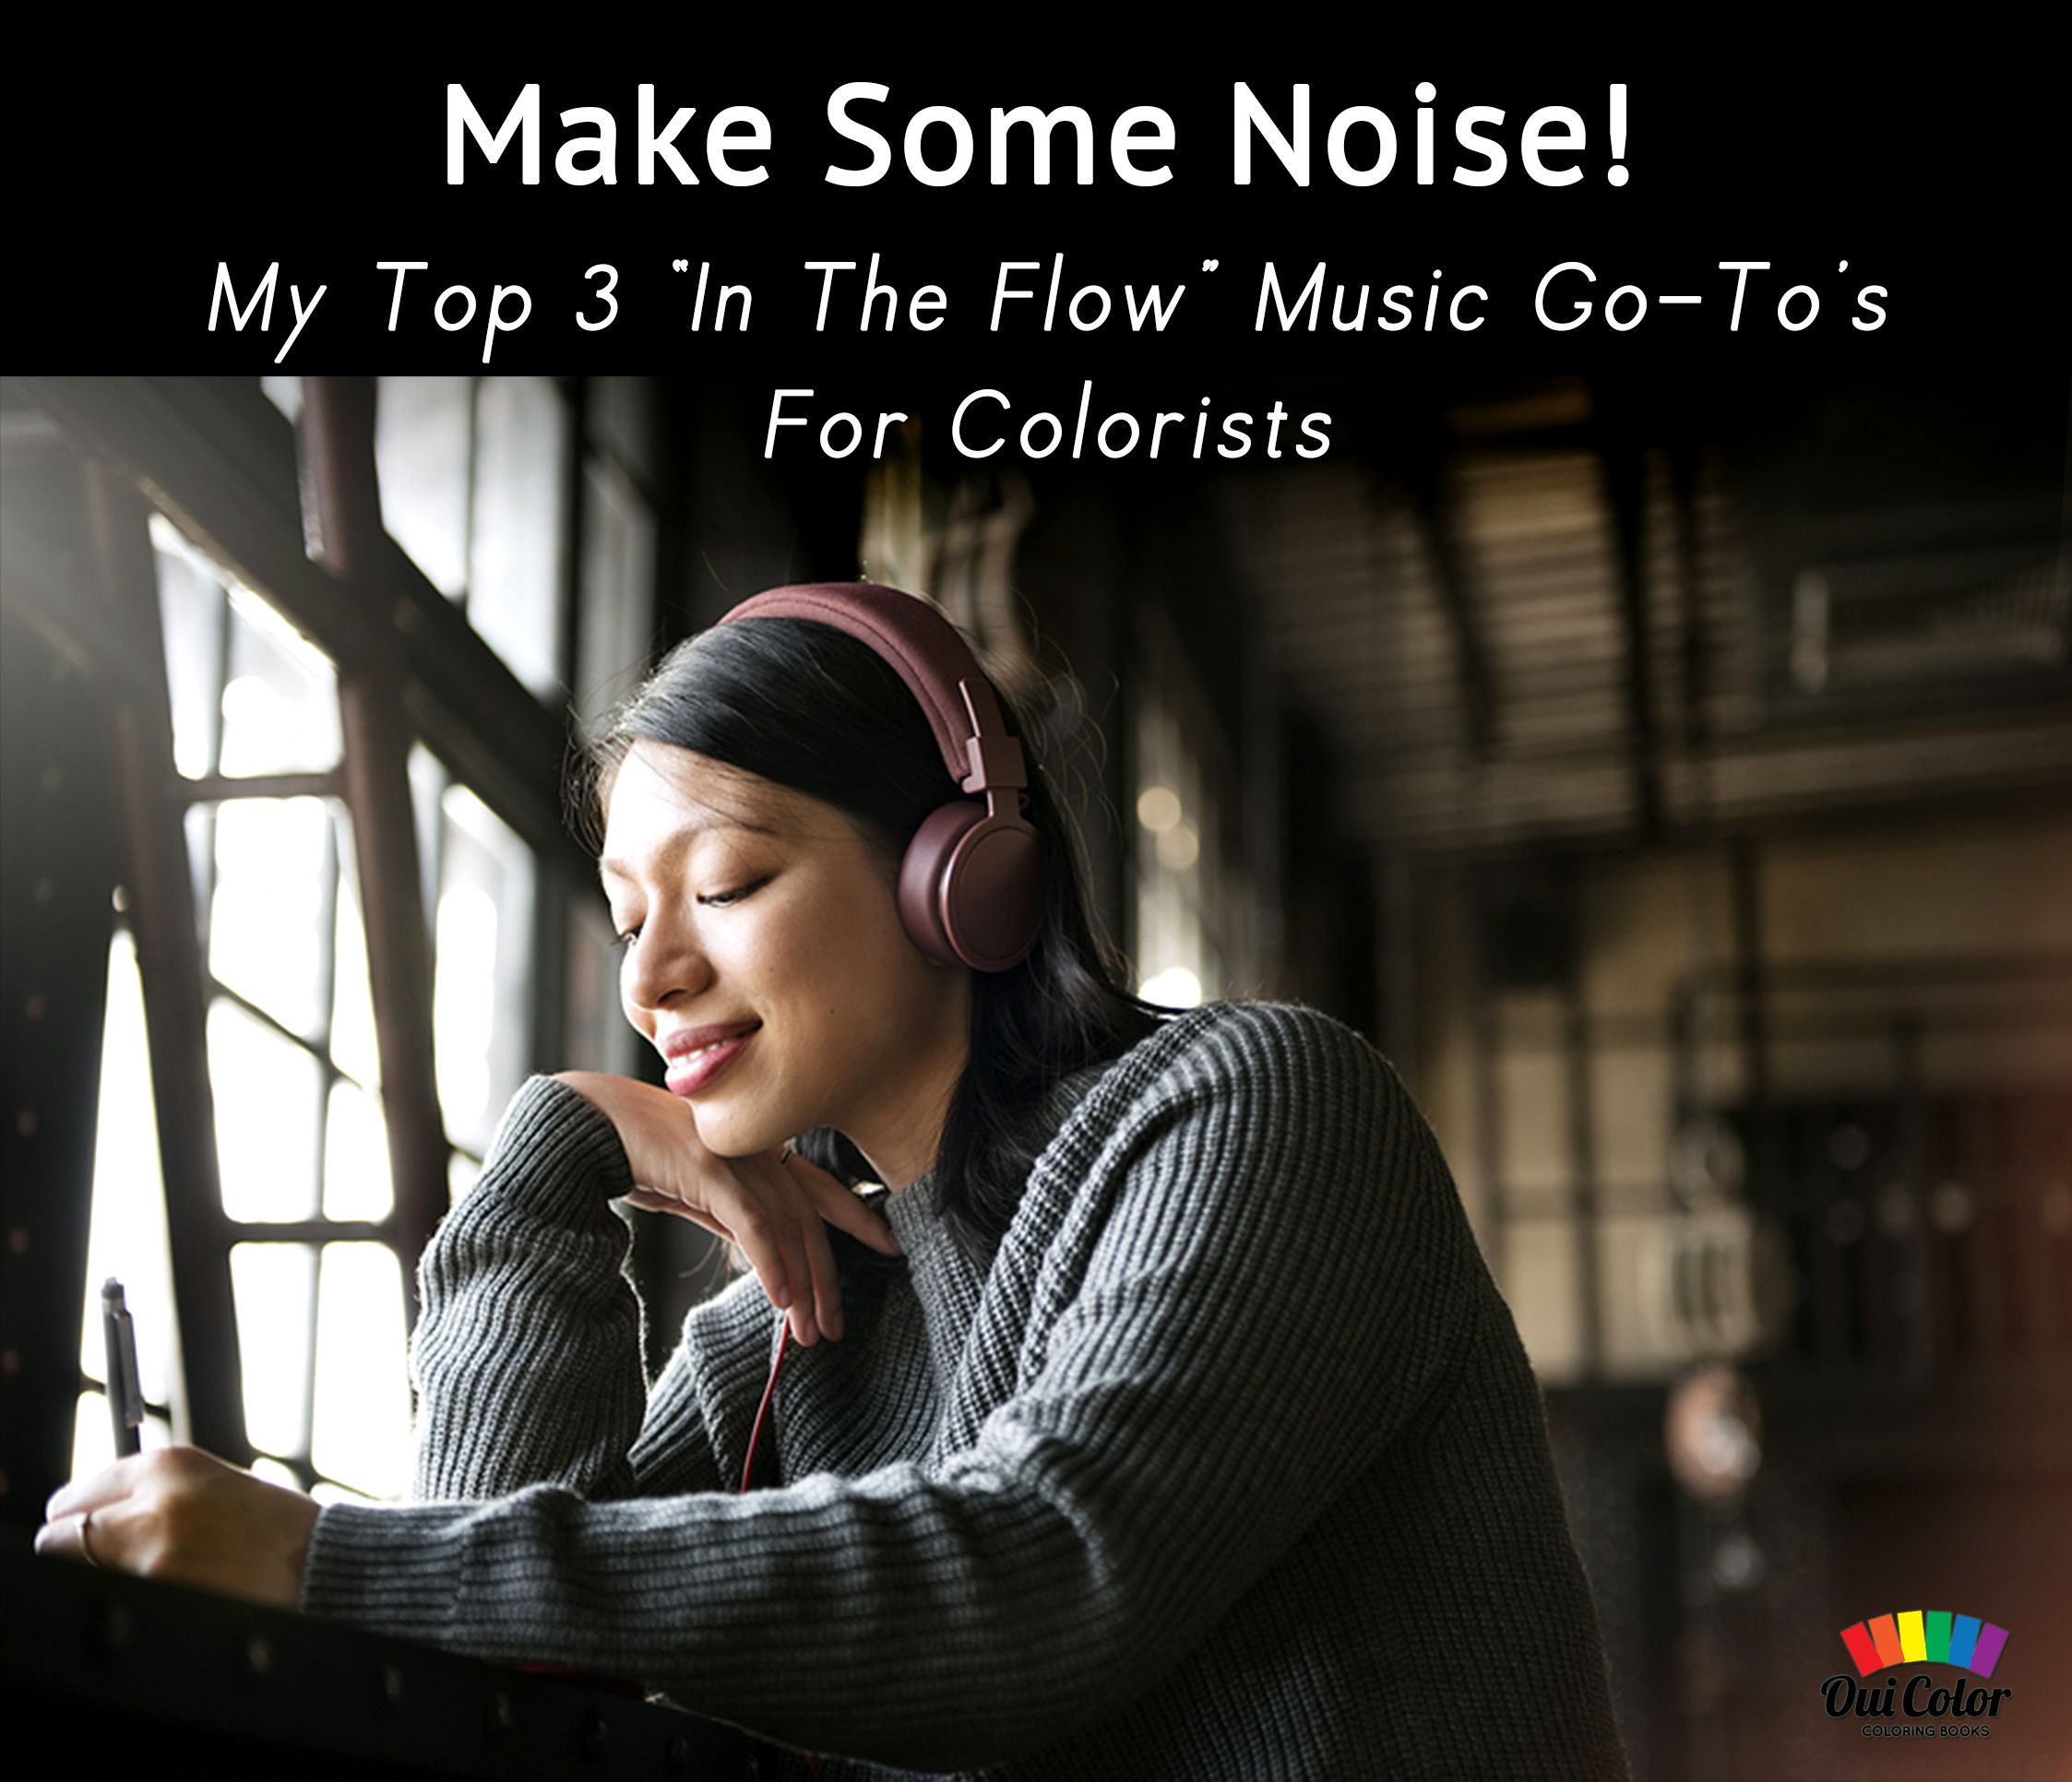 Top 3 In The Flow #Music Go-To's for #Colorists #AdultColoringBooks #Coloring